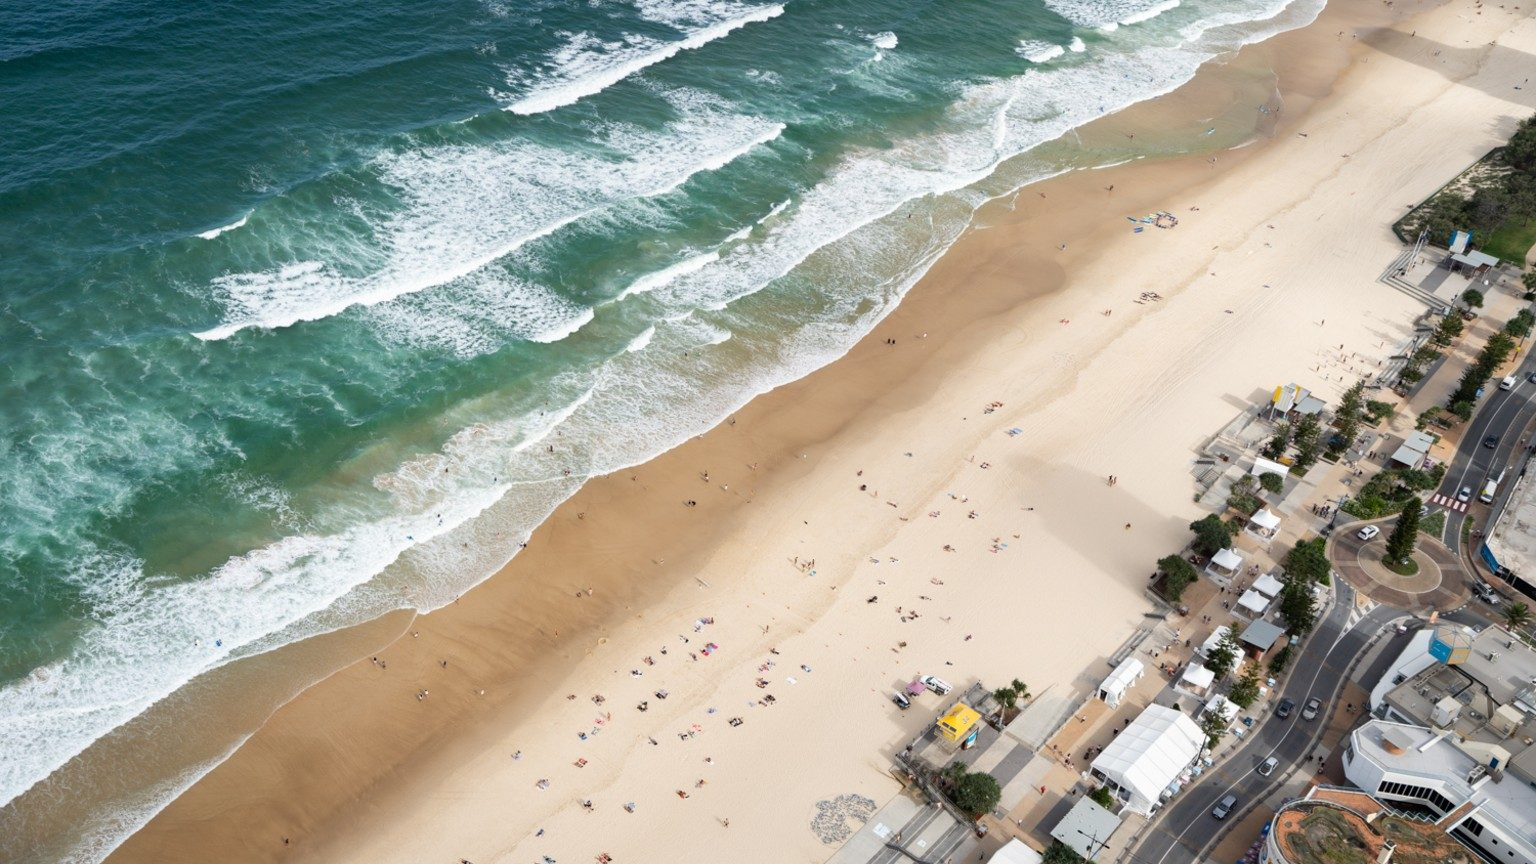 View of Surfers Paradise beach and ocean from Peppers Soul.